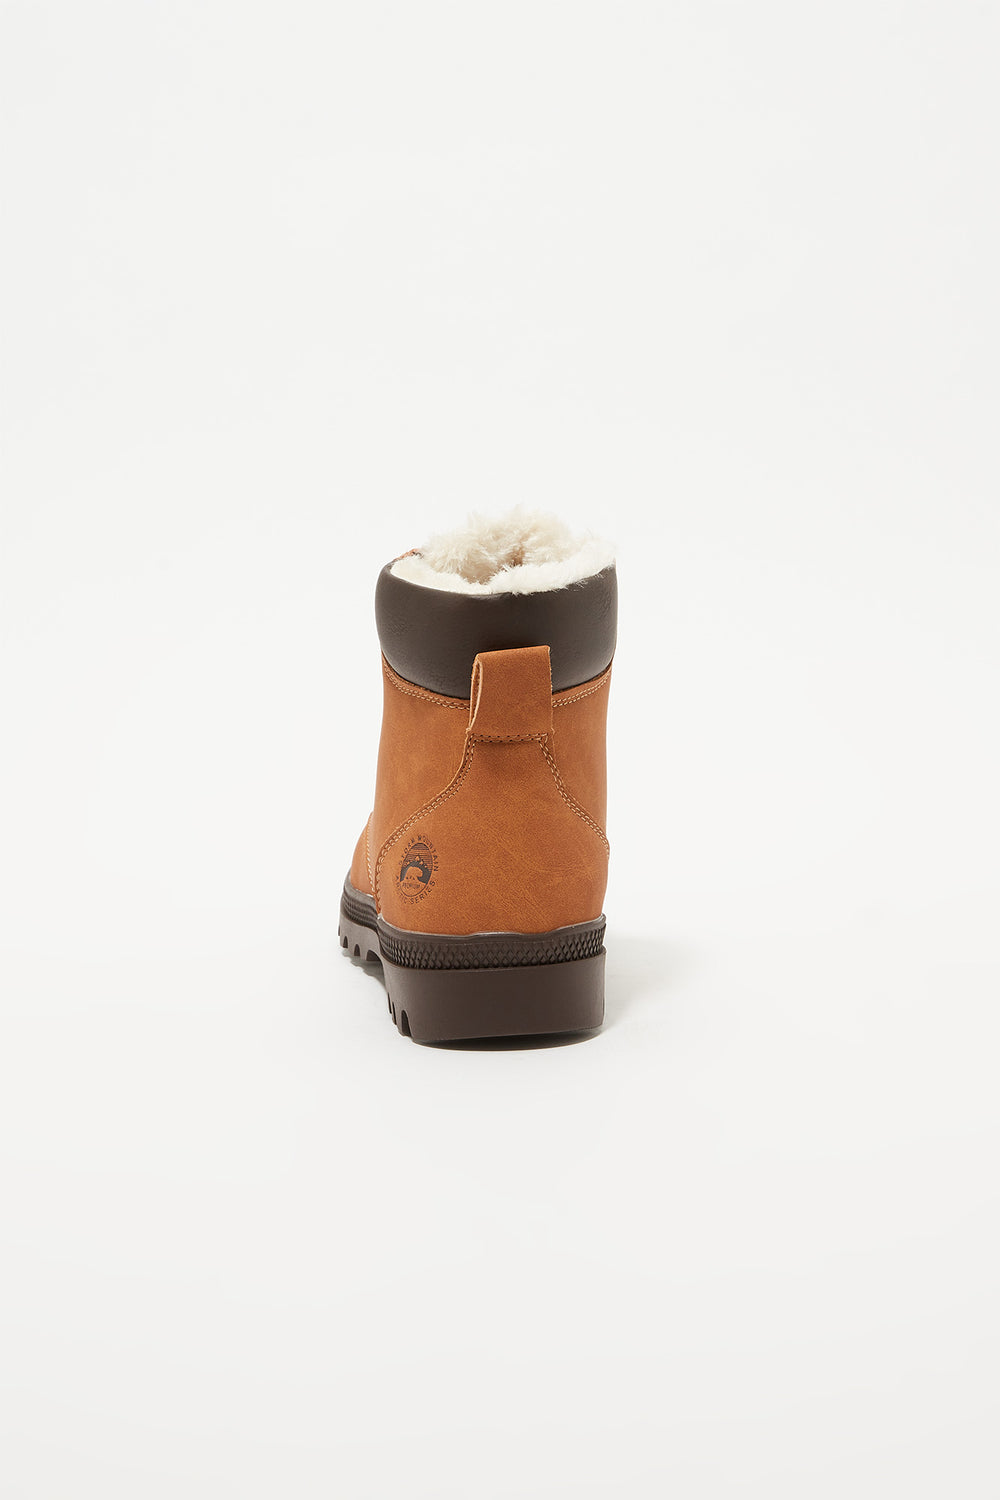 Storm Mountain Youth Faux-Fur Hiker Boots Camel